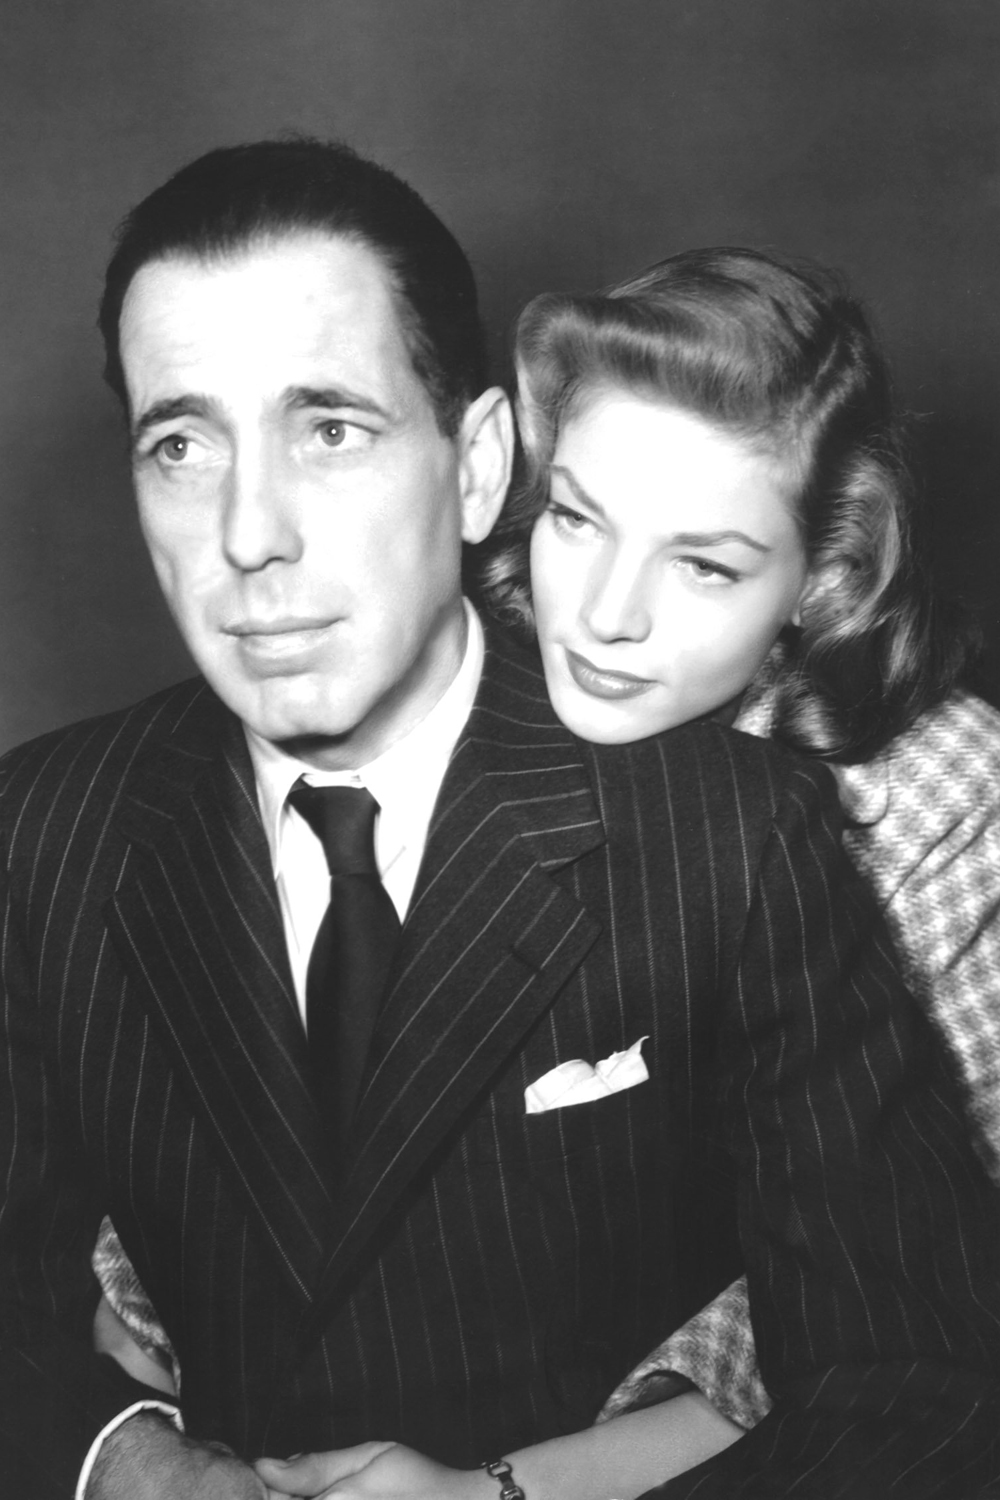 Lauren bacall and humphrey bogart 39 s wedding video for Lauren bacall married to humphrey bogart